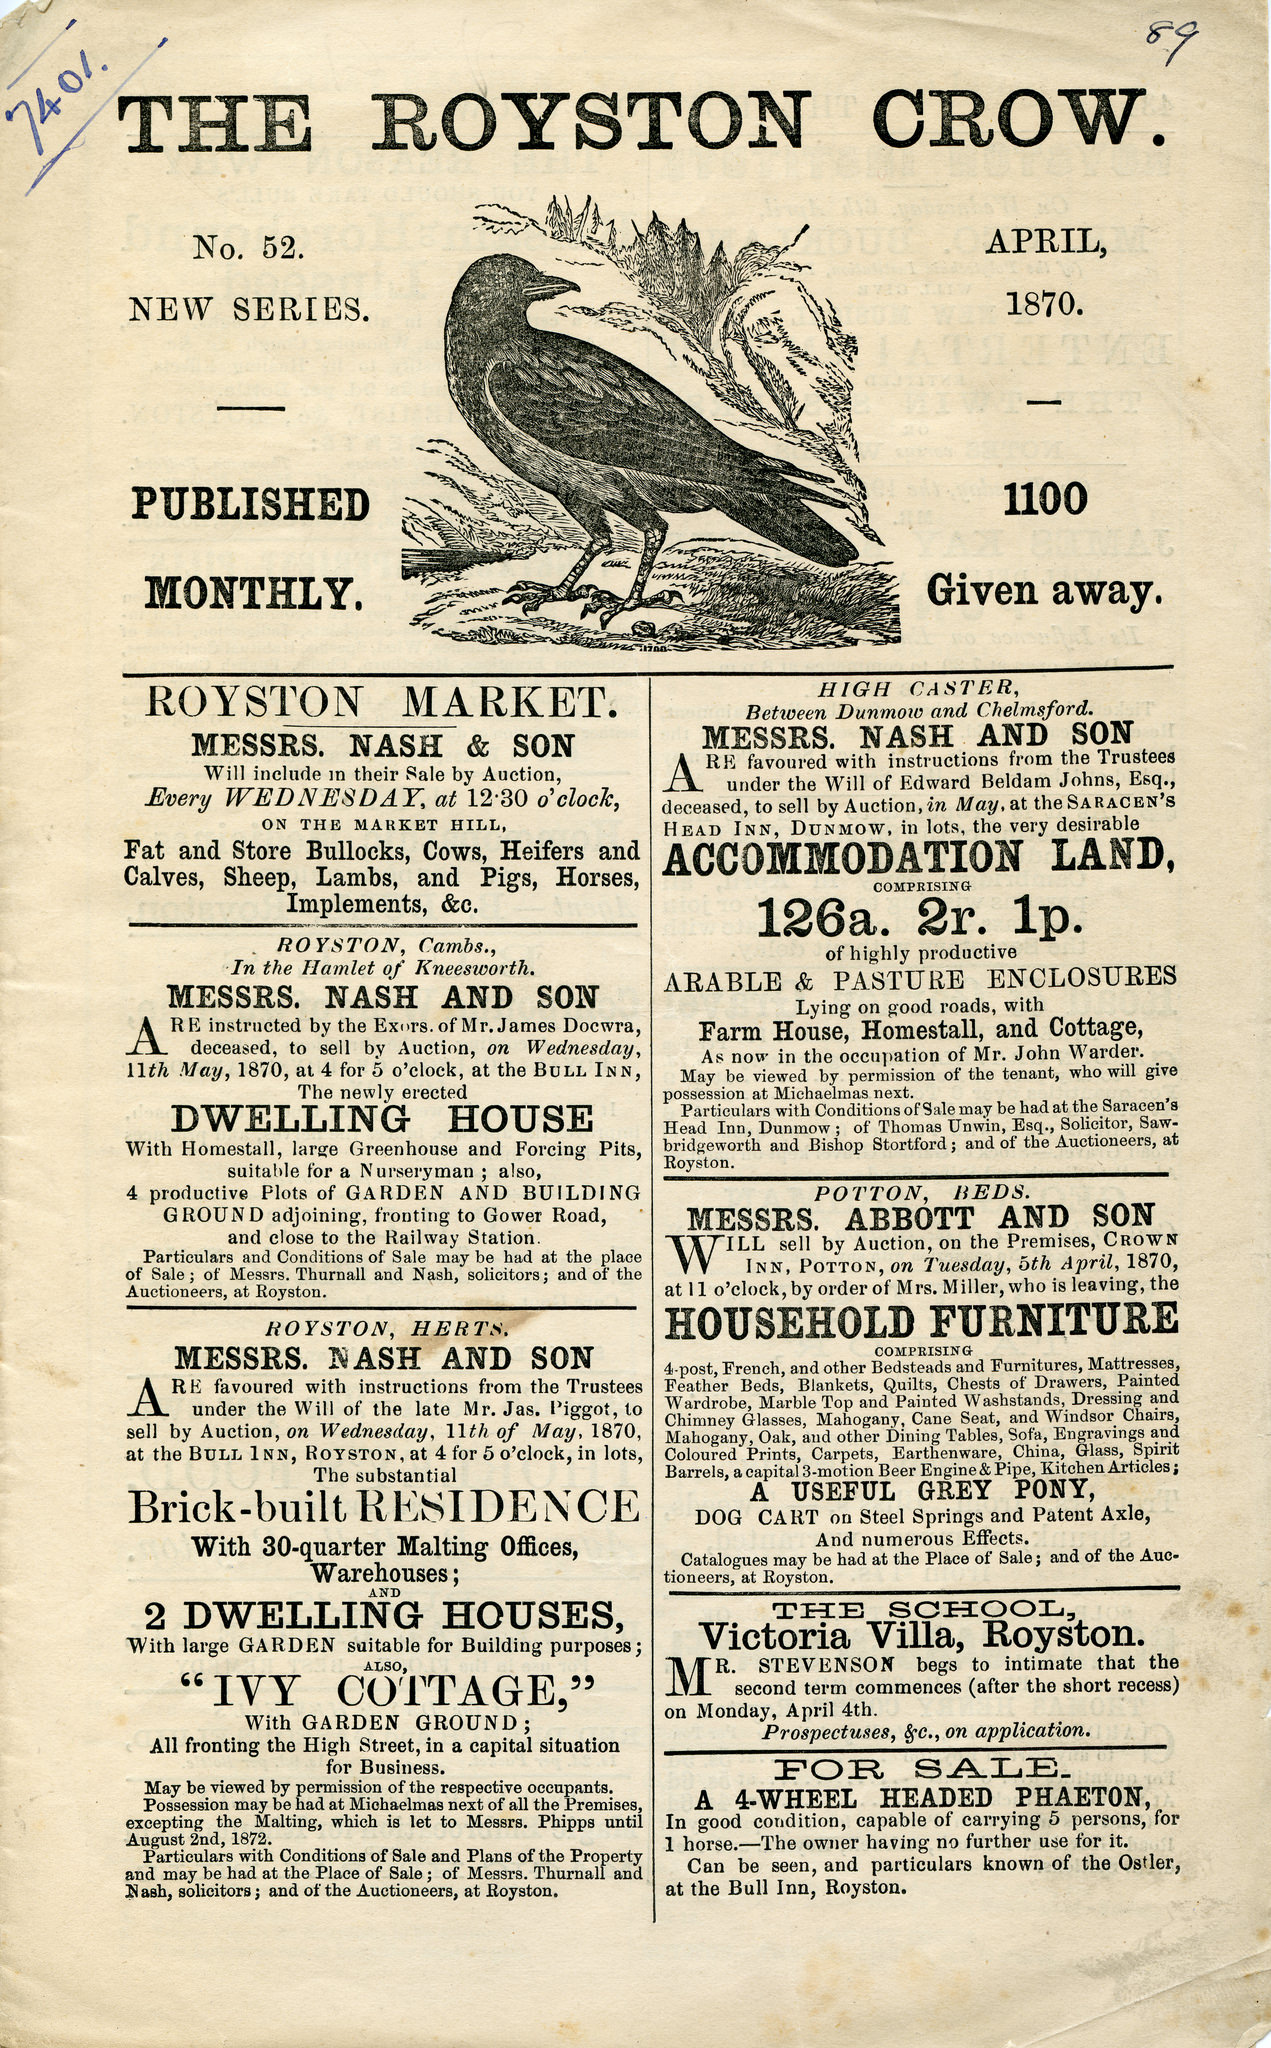 Front page of the Royston Crow, 1870